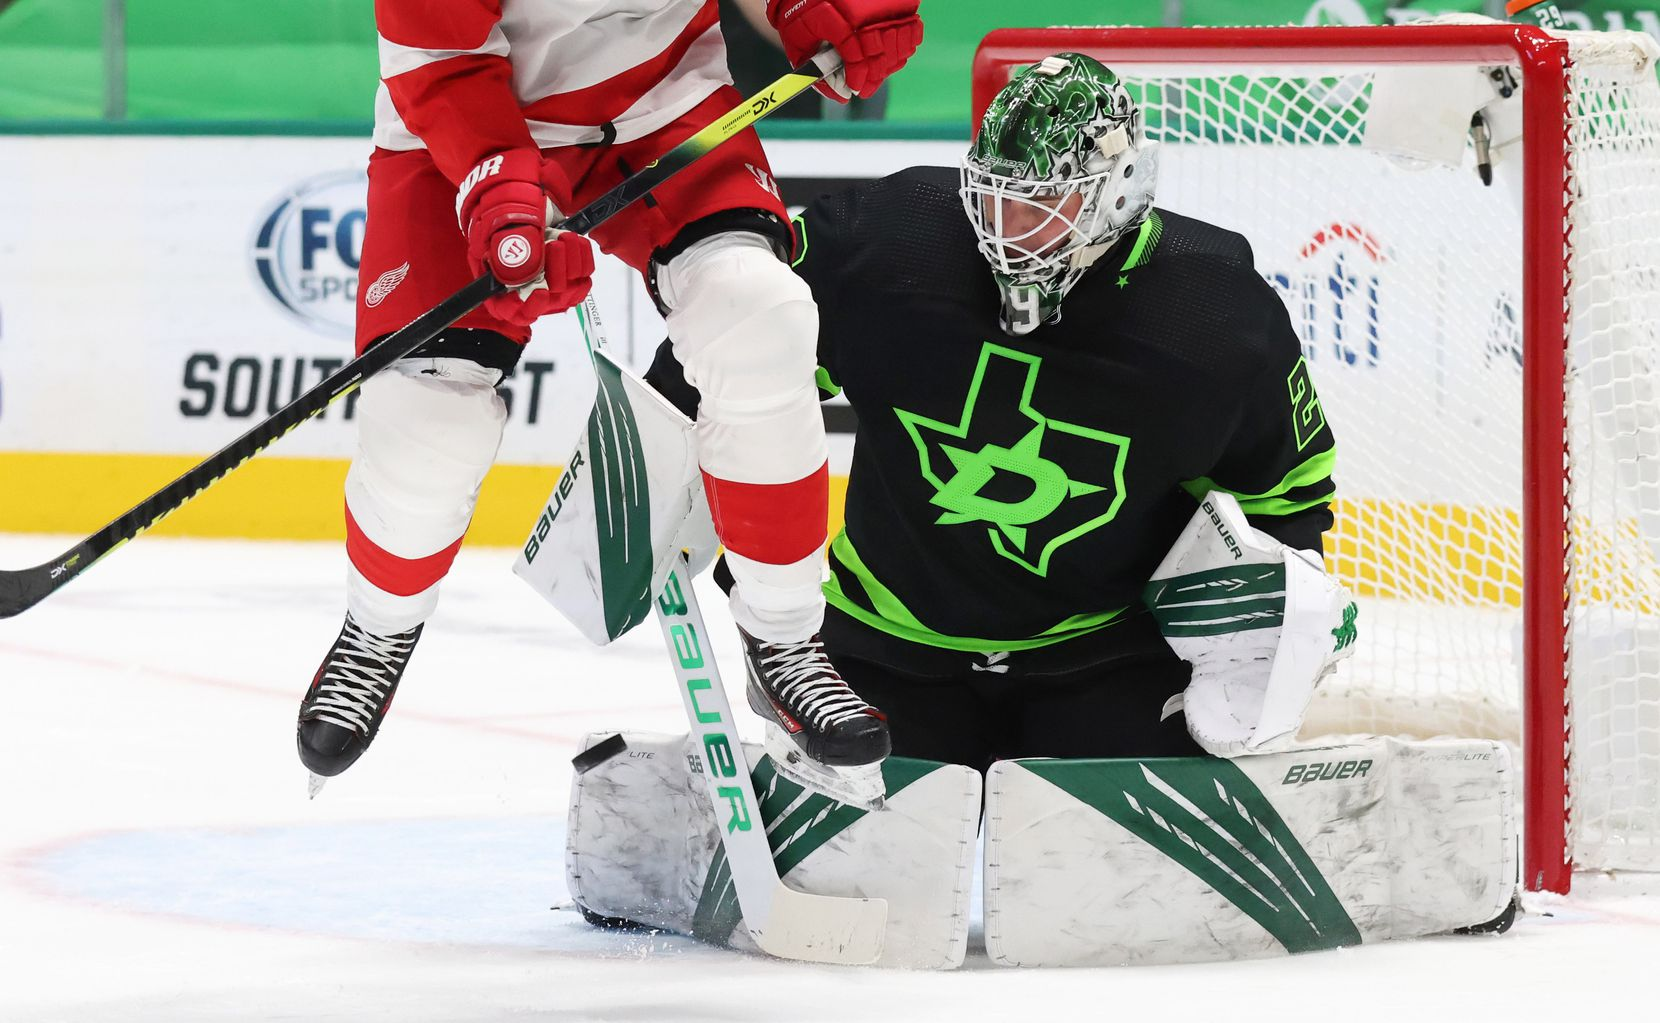 Dallas Stars goaltender Jake Oettinger (29) stops a shot on goal as Detroit Red Wings right wing Bobby Ryan (54) leaps in the air during the second period of play at American Airlines Center on Thursday, January 28, 2021in Dallas. (Vernon Bryant/The Dallas Morning News)